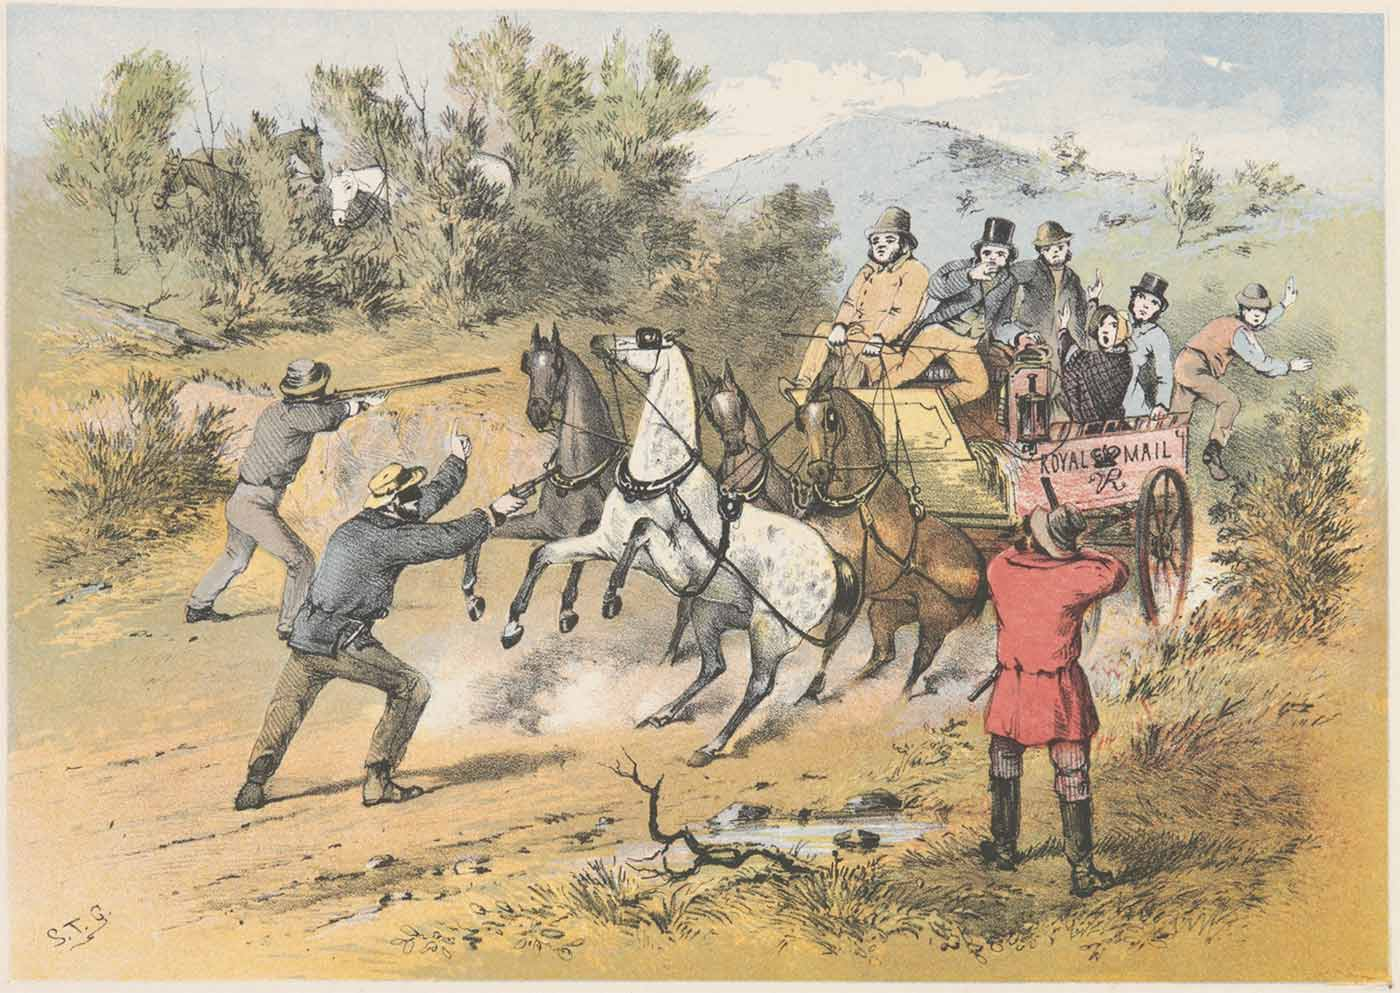 Watercolour painting of a group of bandits brandishing guns at a horse-drawn carriage with 'ROYAL MAIL' on its side and carrying a group of people. - click to view larger image